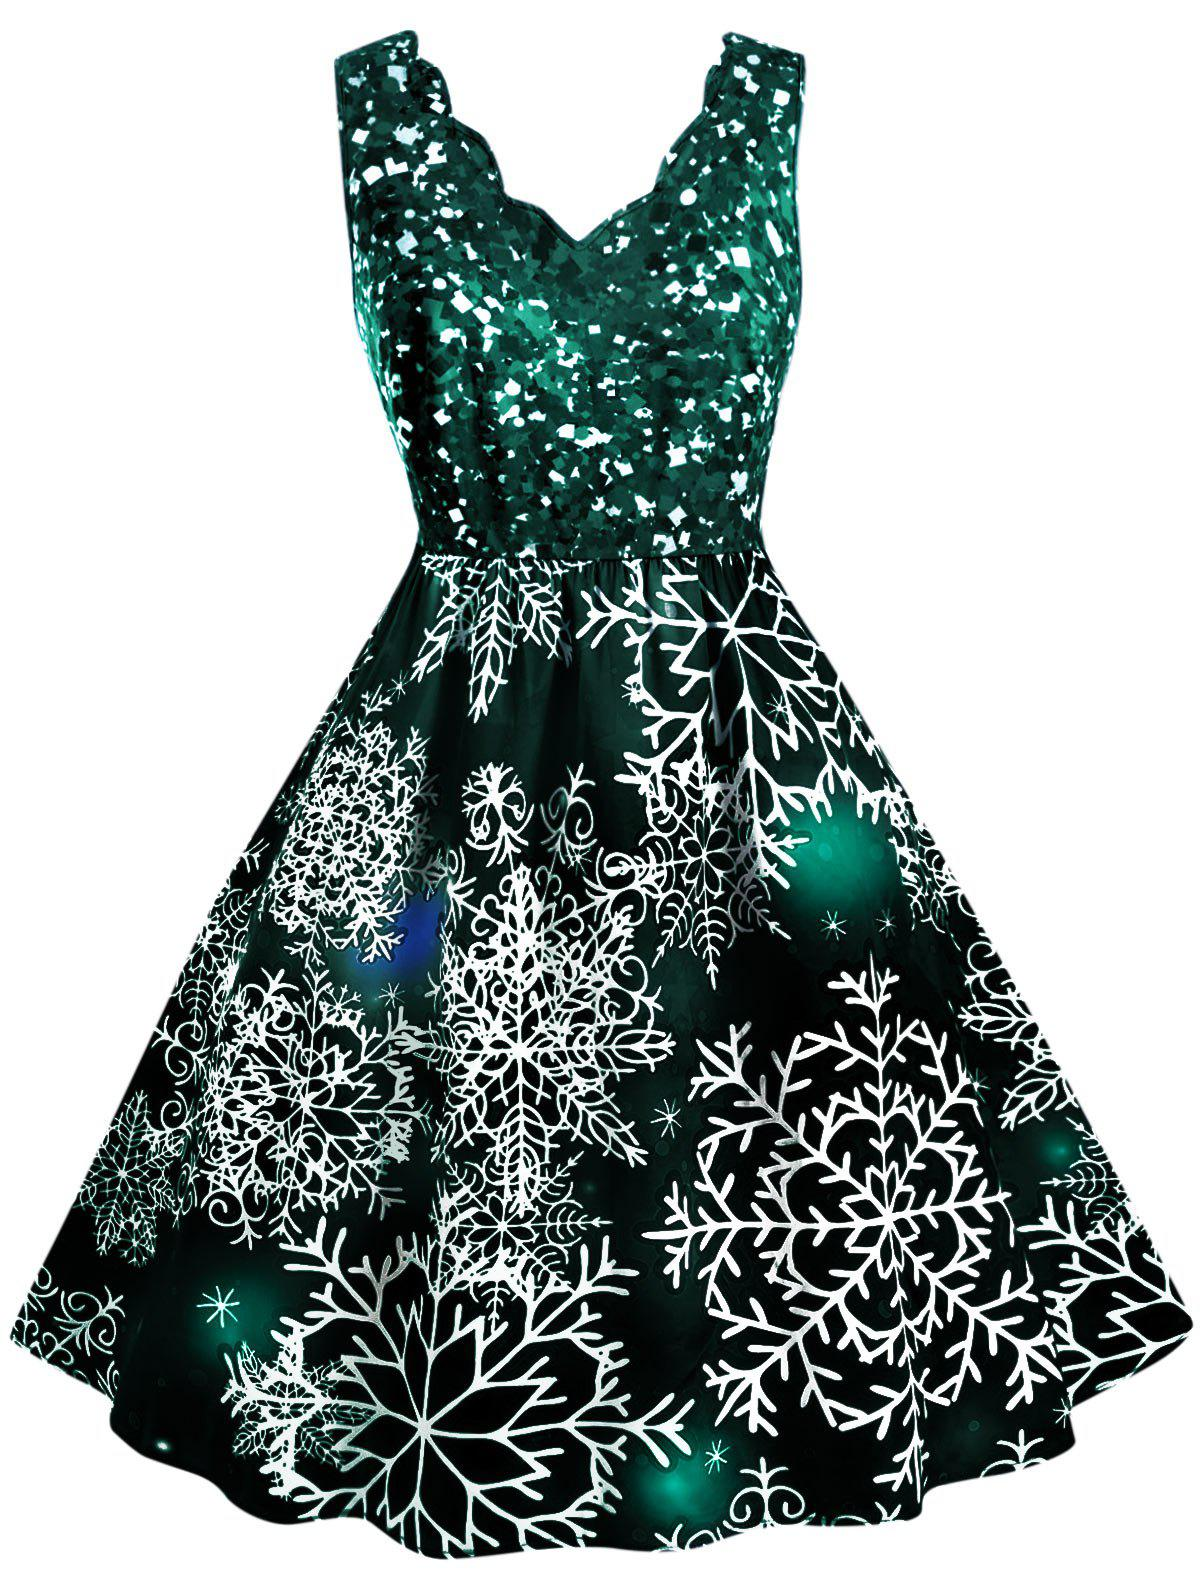 Outfits Scalloped Collar Snowflake Print Christmas Plus Size Dress